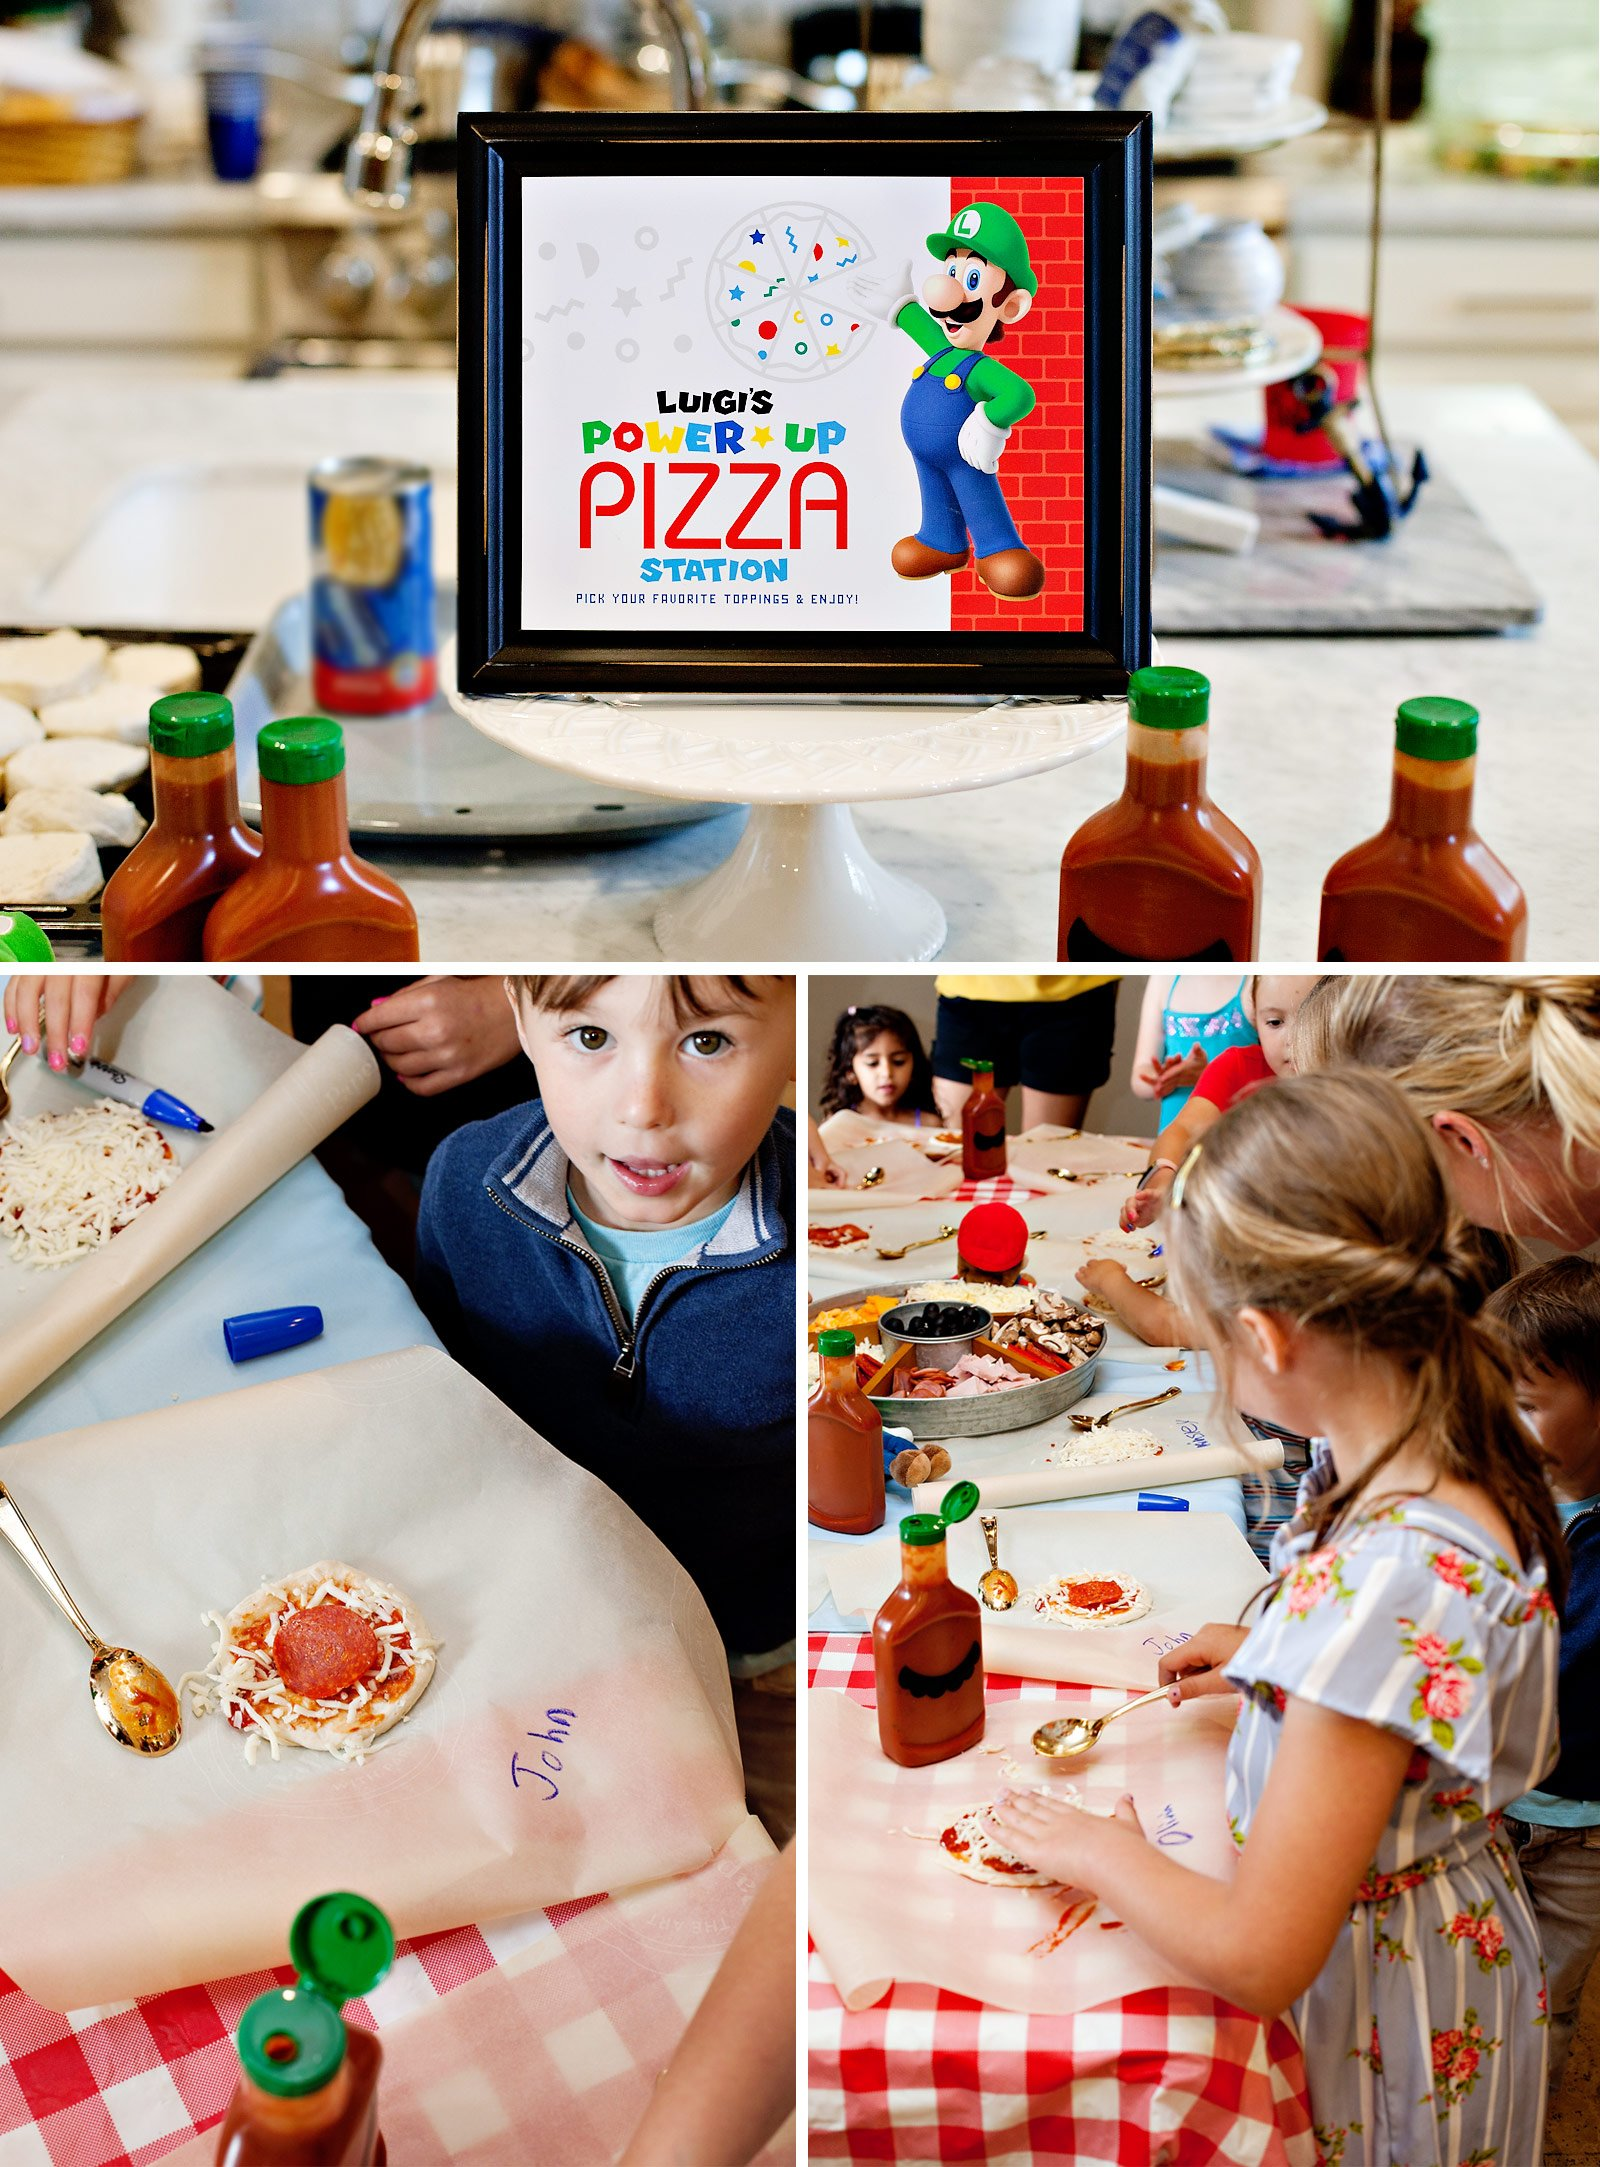 Super Mario Party Kids Pizza Station